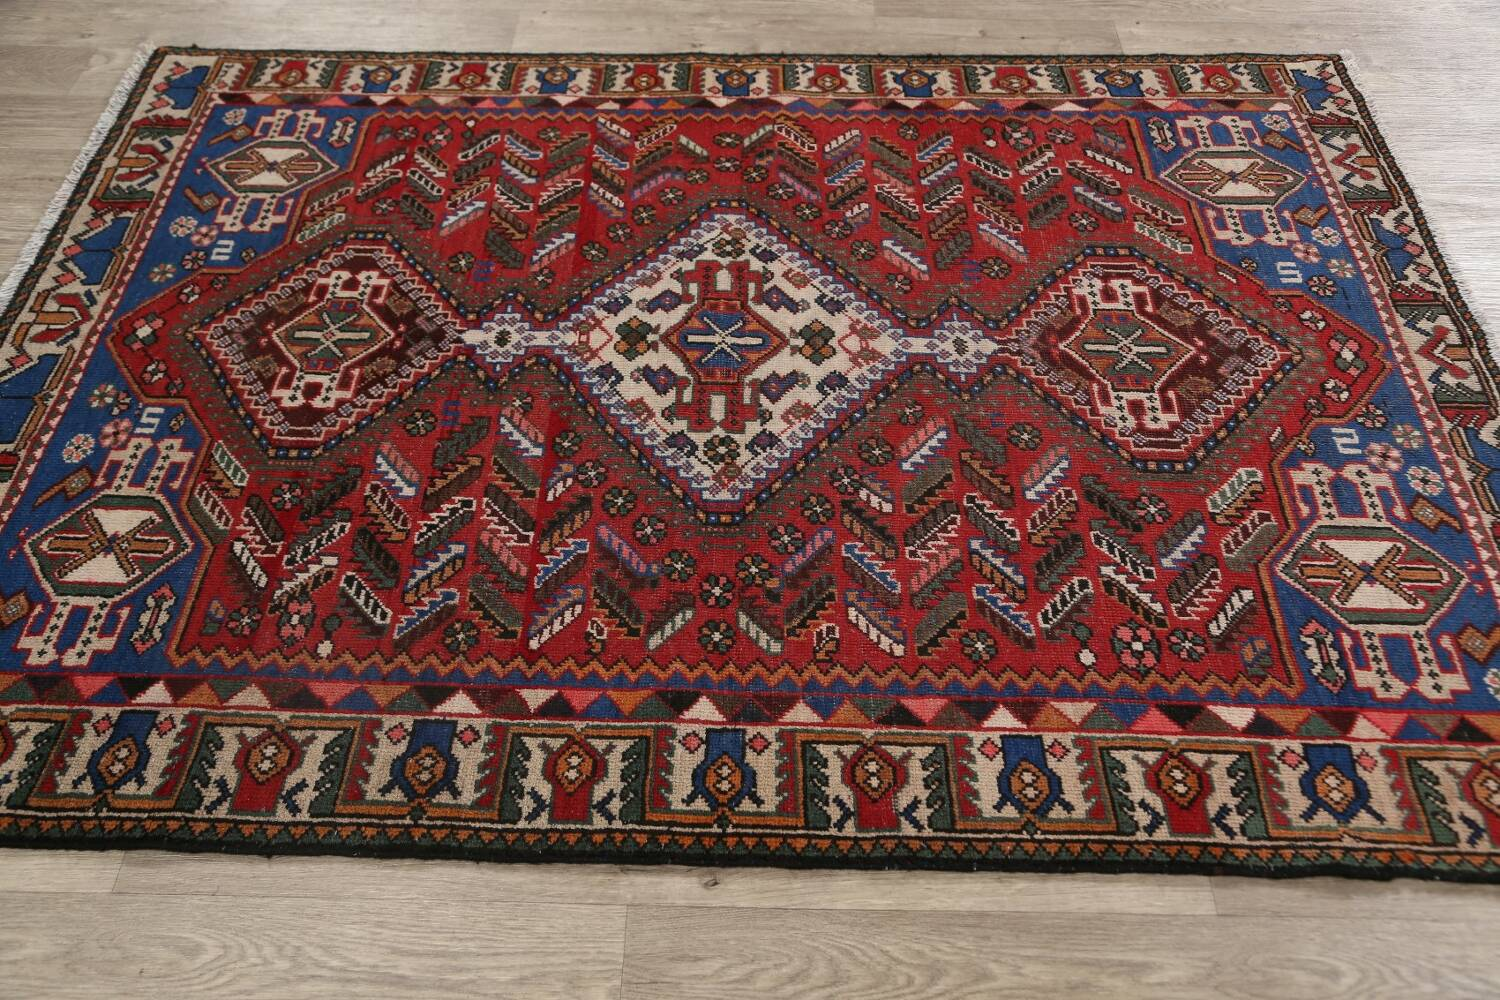 Antique Tribal Bakhtiari Persian Area Rug 5x6 image 16